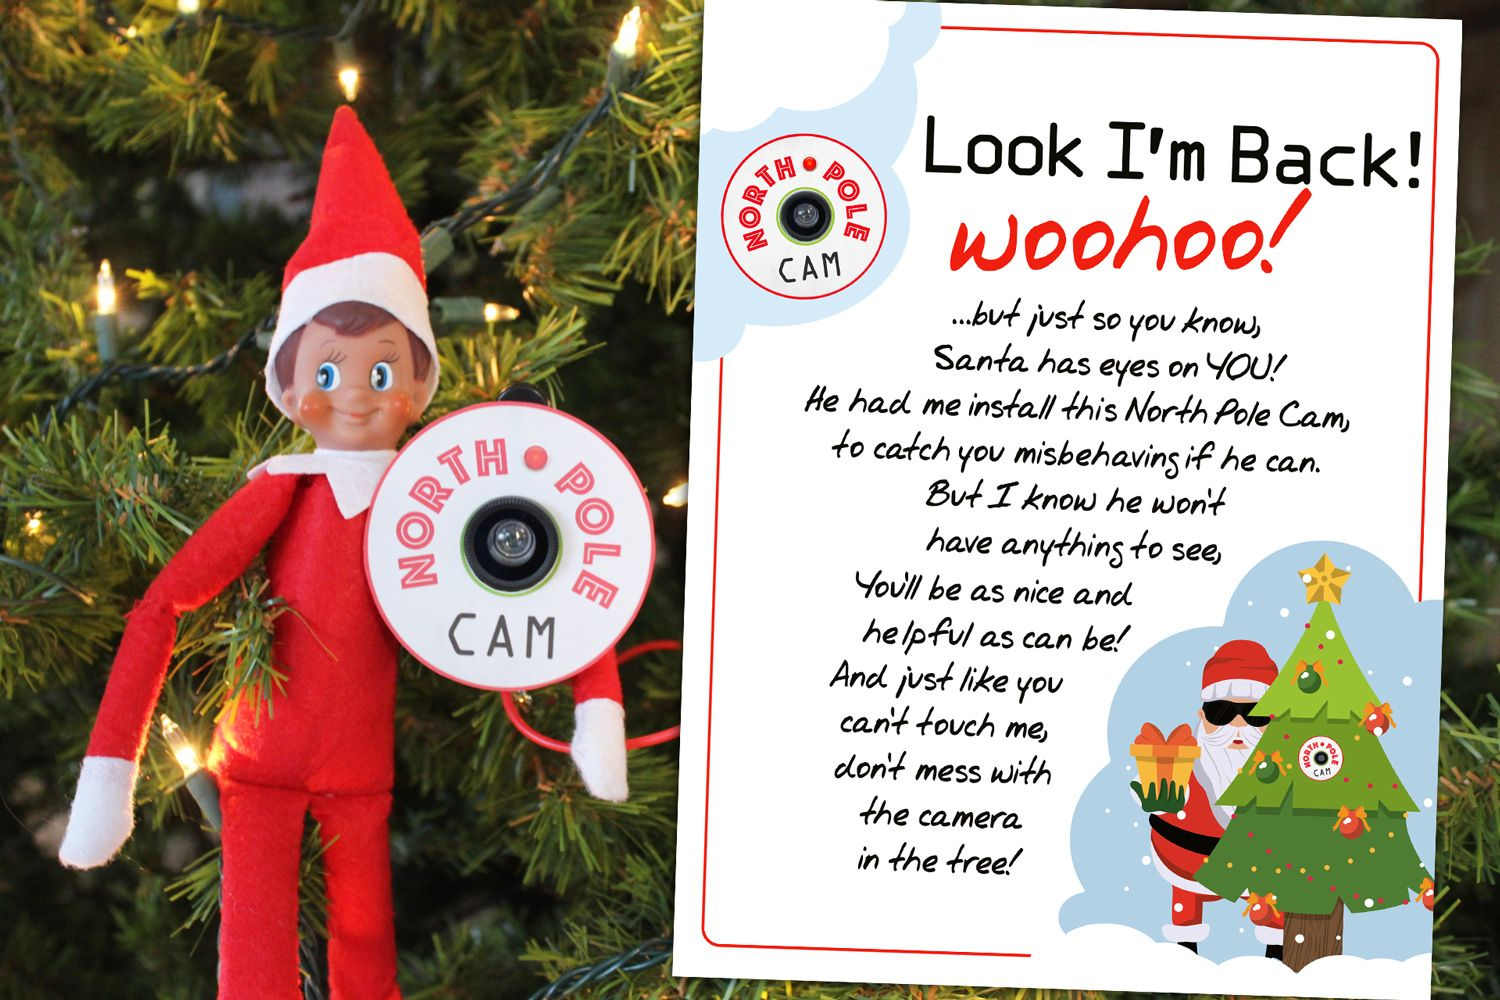 55+ New Elf on the Shelf Ideas: #26 5 Minute Santa or North Pole Cam ...